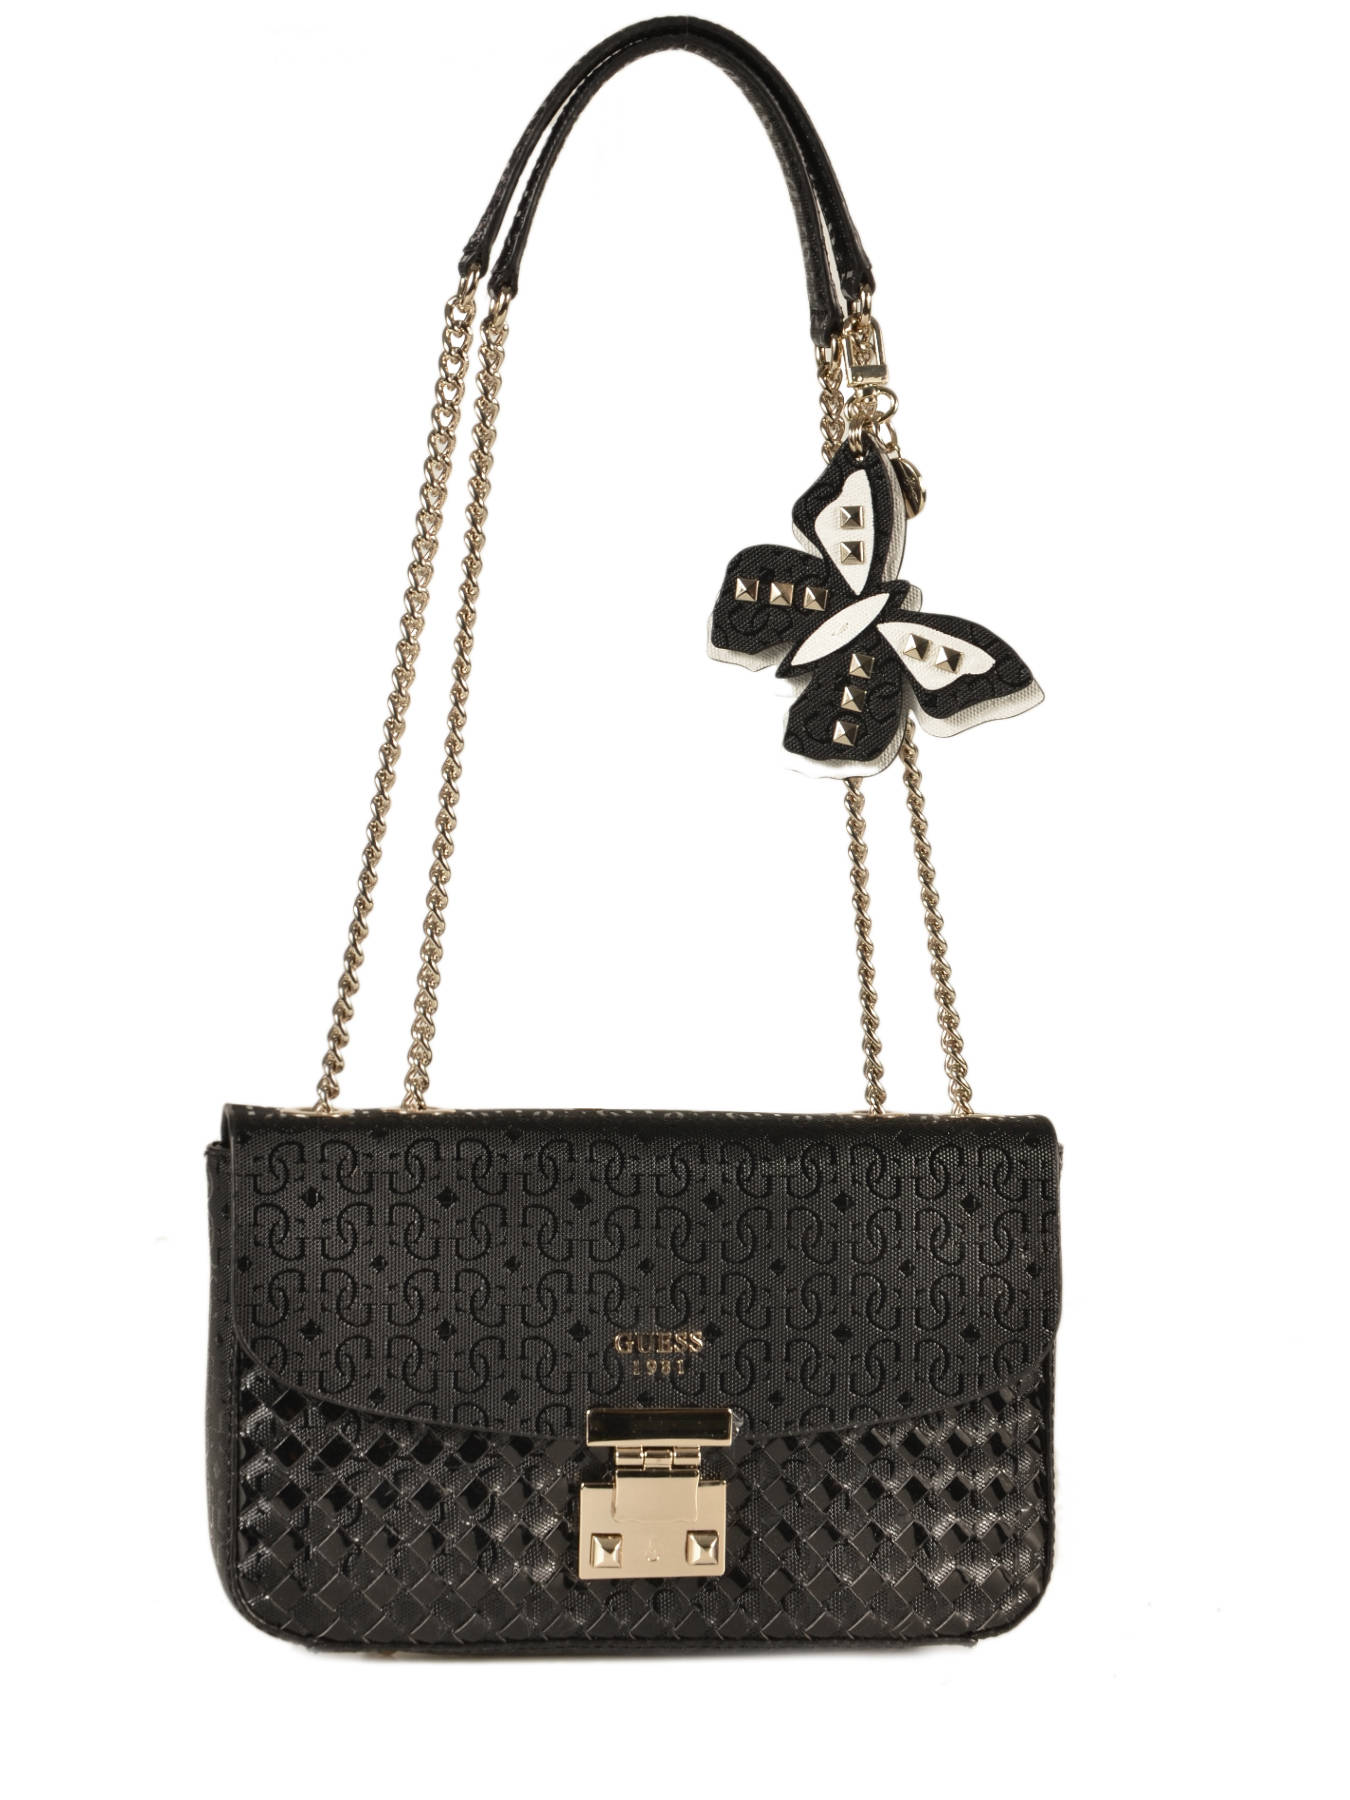 Sac Guess Noir Occasion : Guess bag flutter best prices